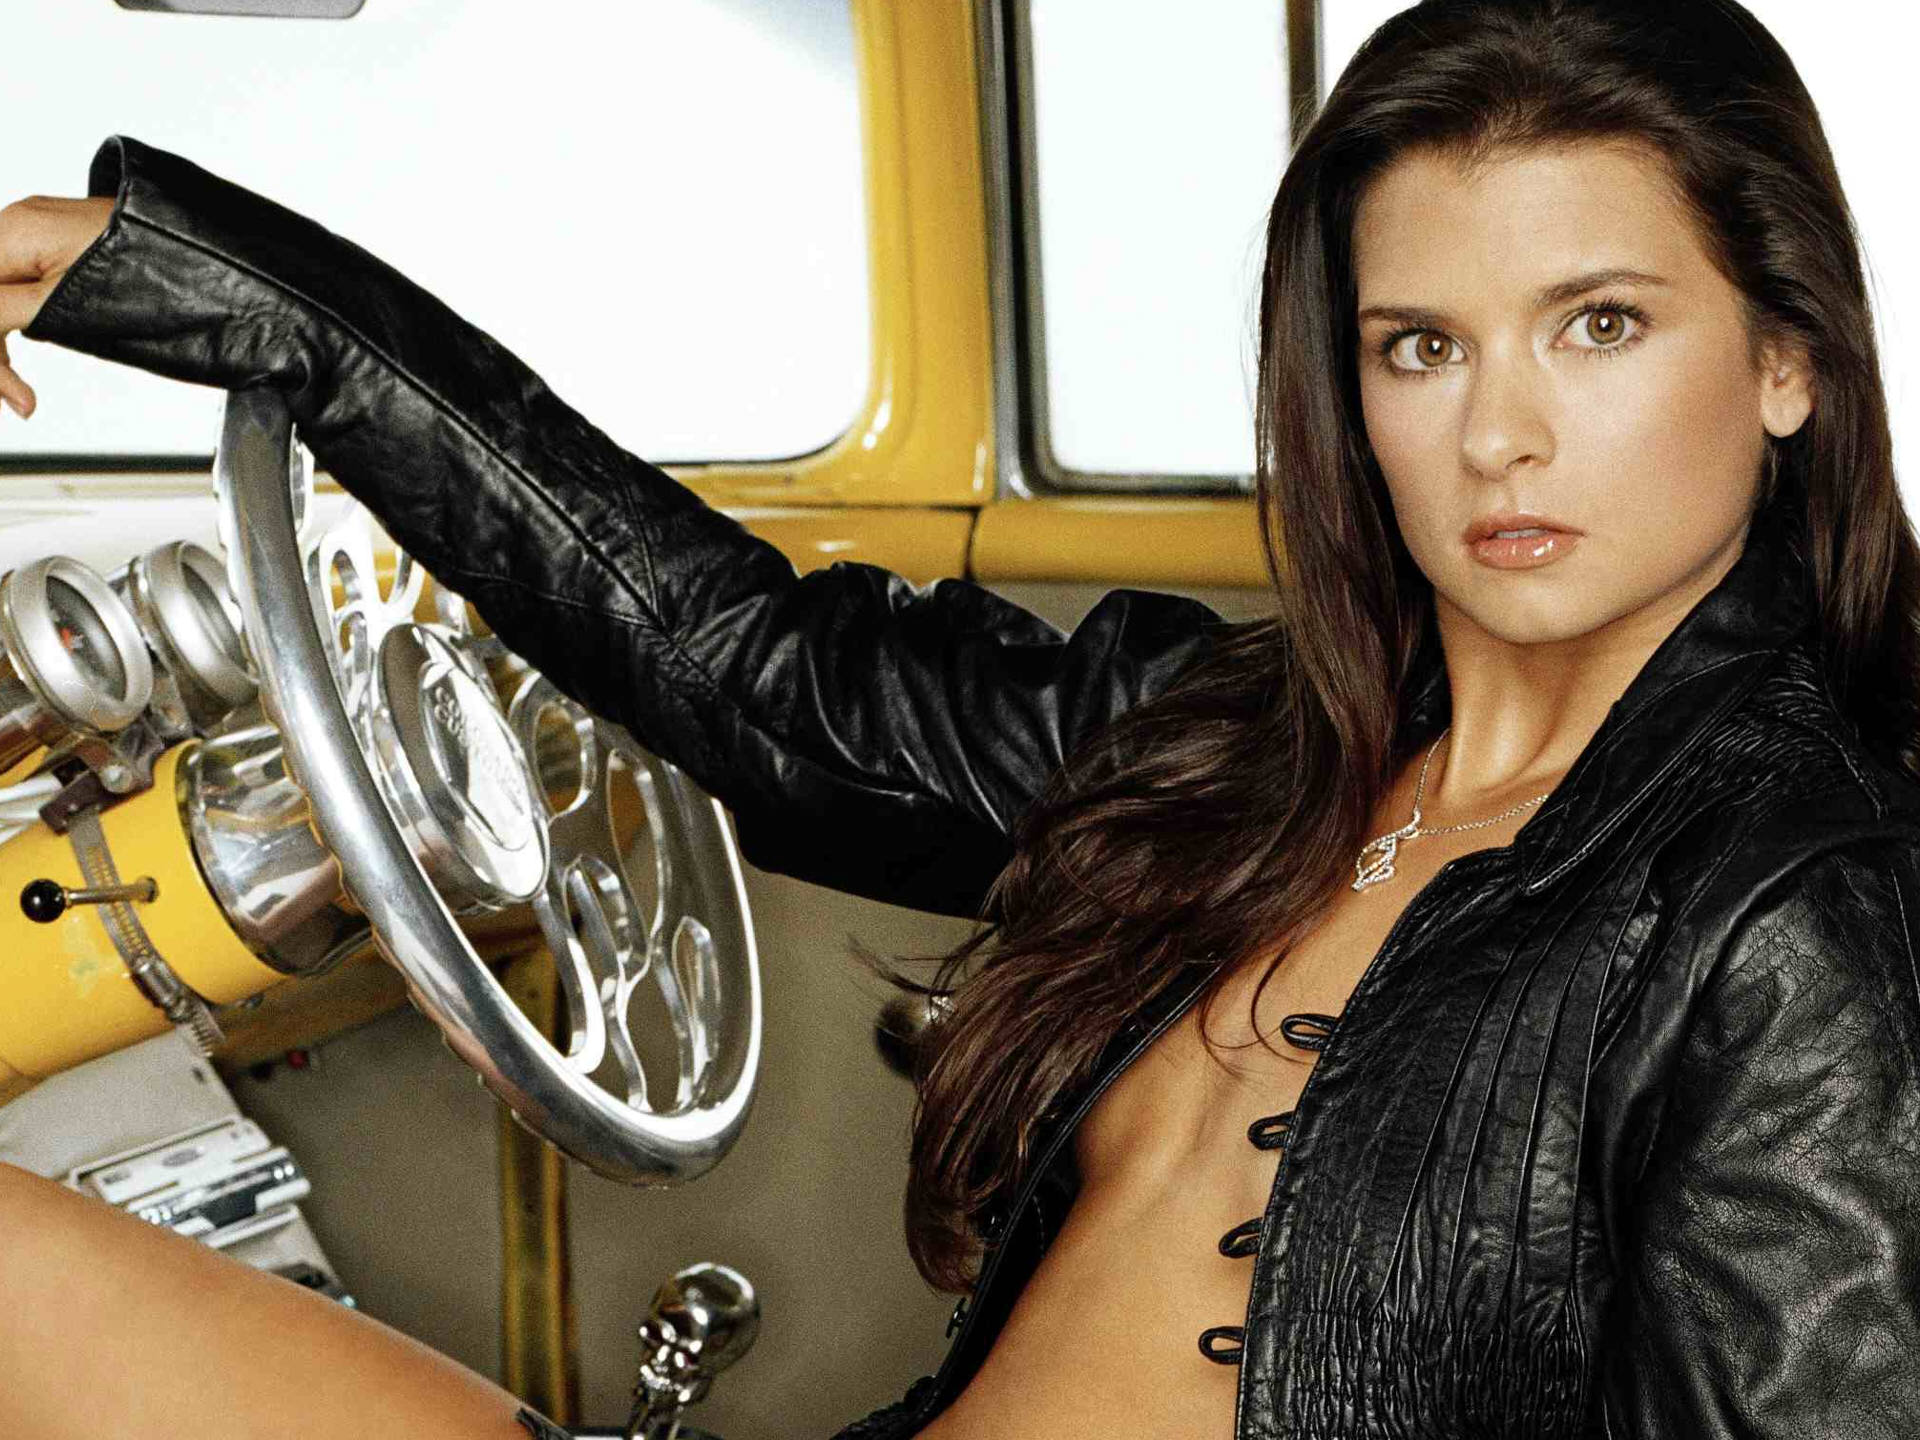 paseode gonzalez Danica Patrick   Wallpaper Colection 1920x1440